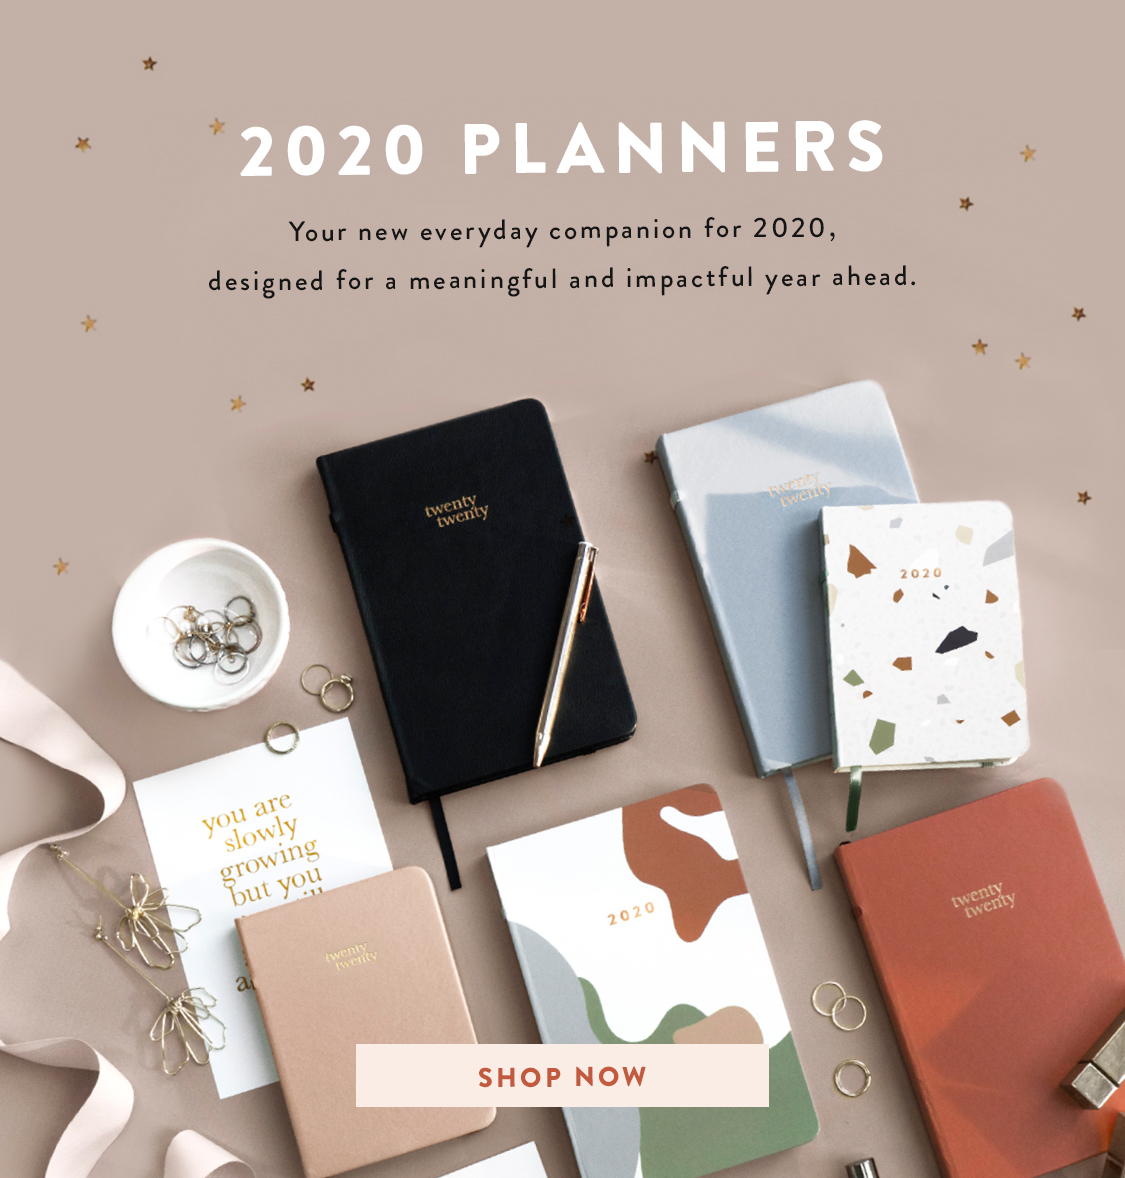 2020 Planners: